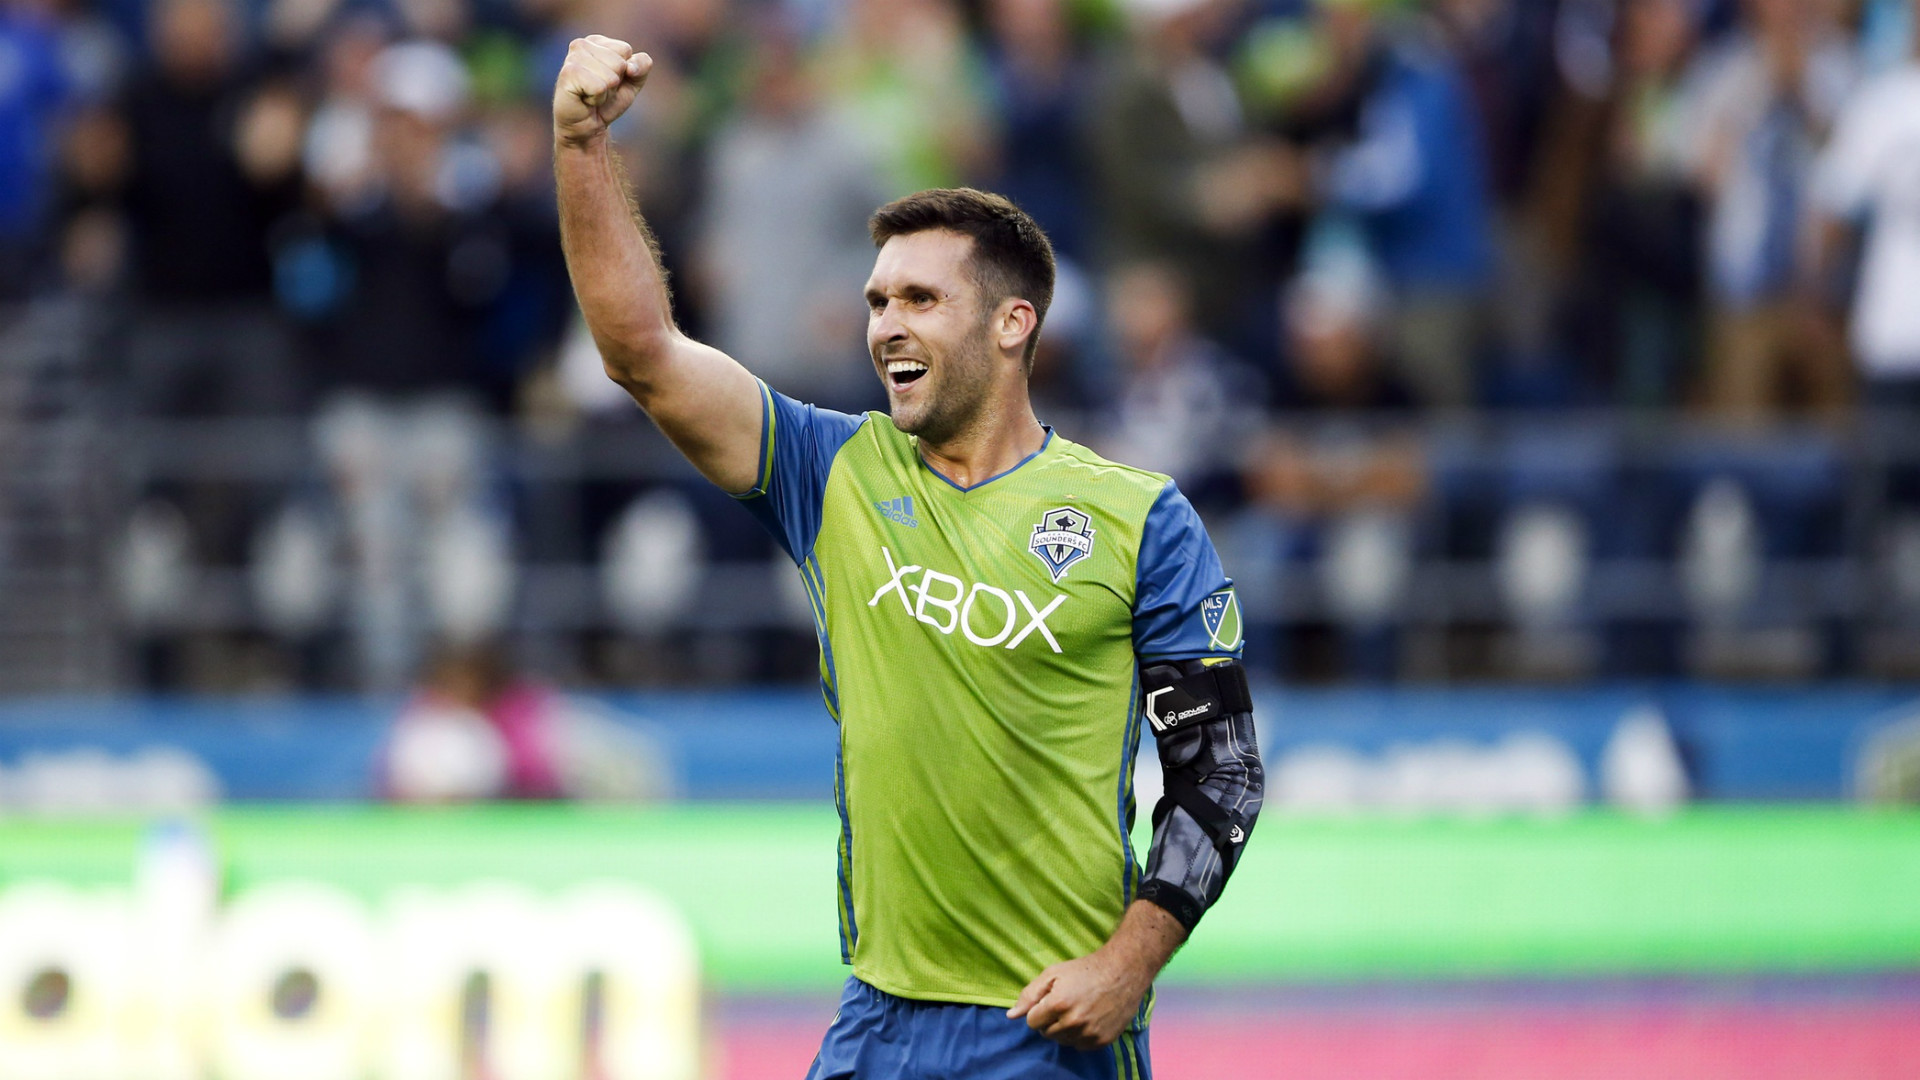 Will-bruin-mls-seattle-sounders-06042017_1ca039m0c6d4m1r1z38ewvpk09